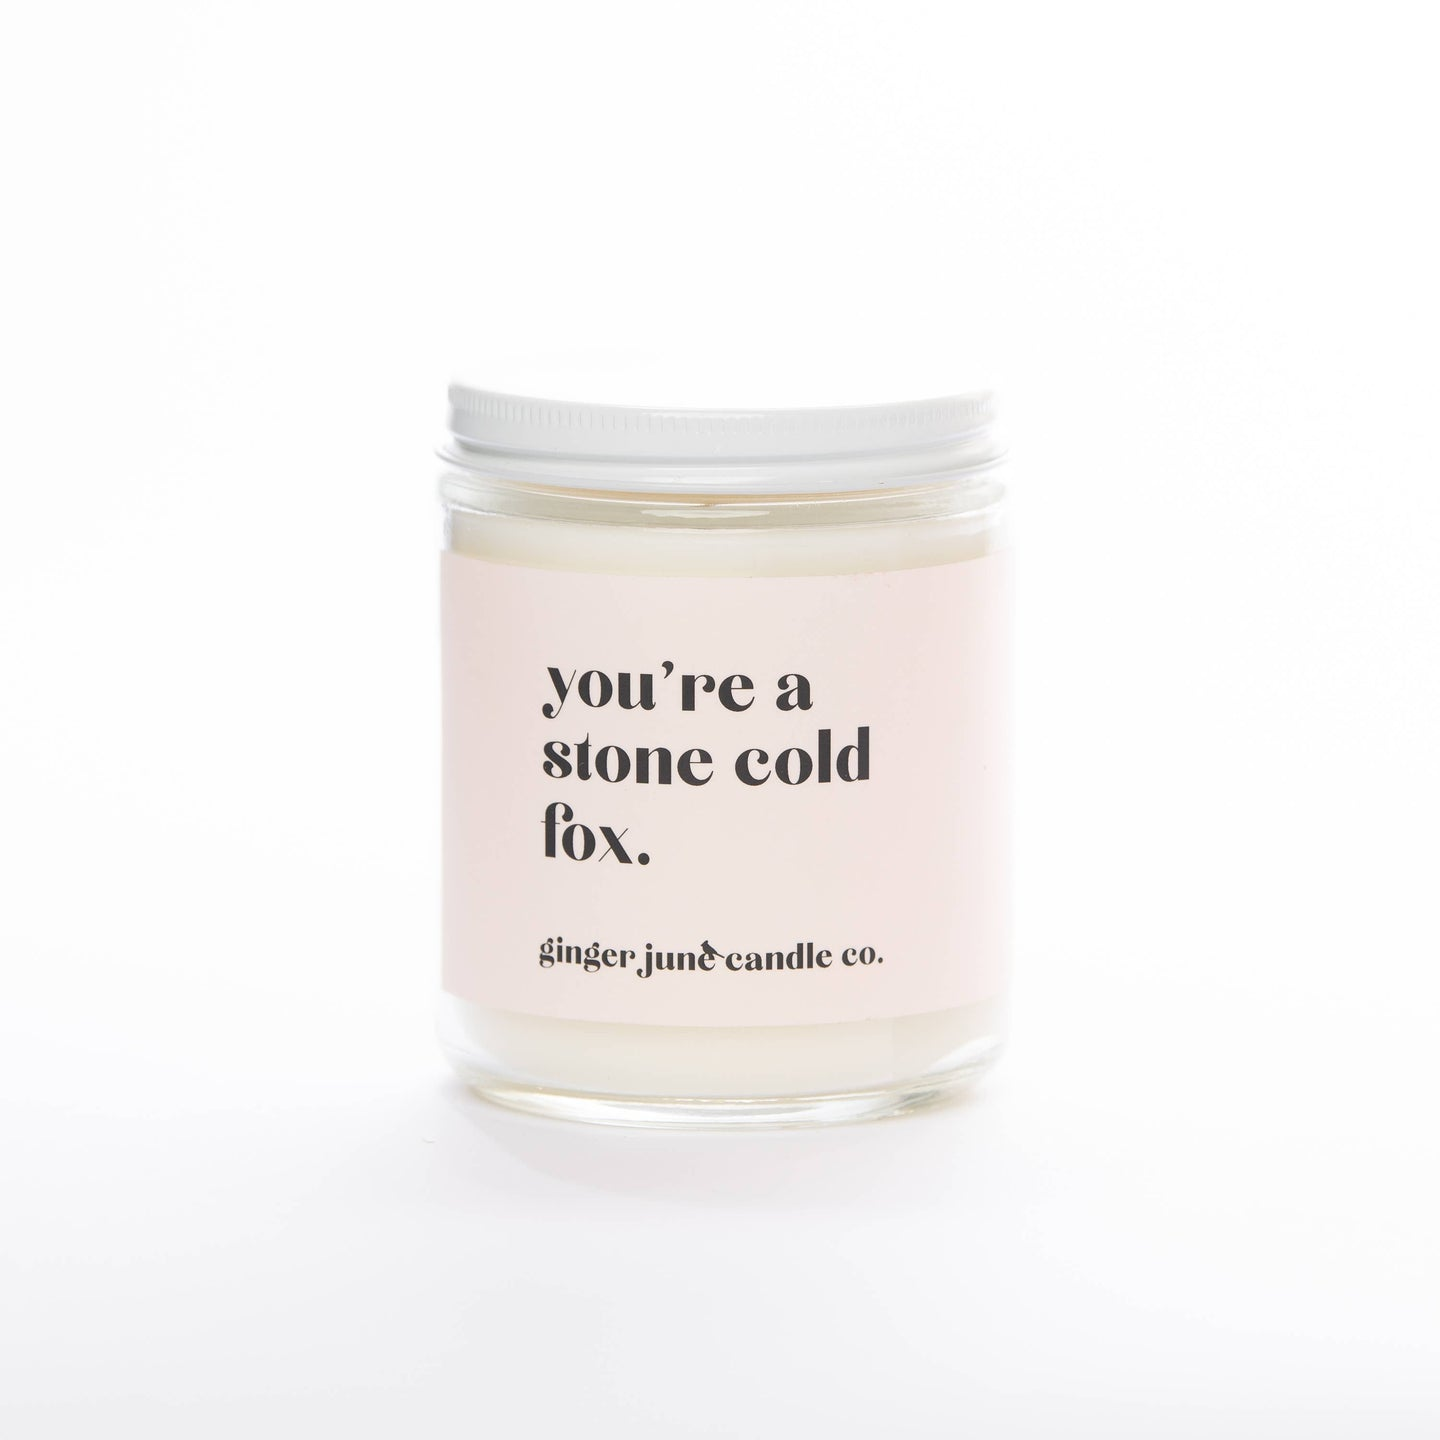 YOU'RE A STONE COLD FOX • NON TOXIC SOY CANDLE